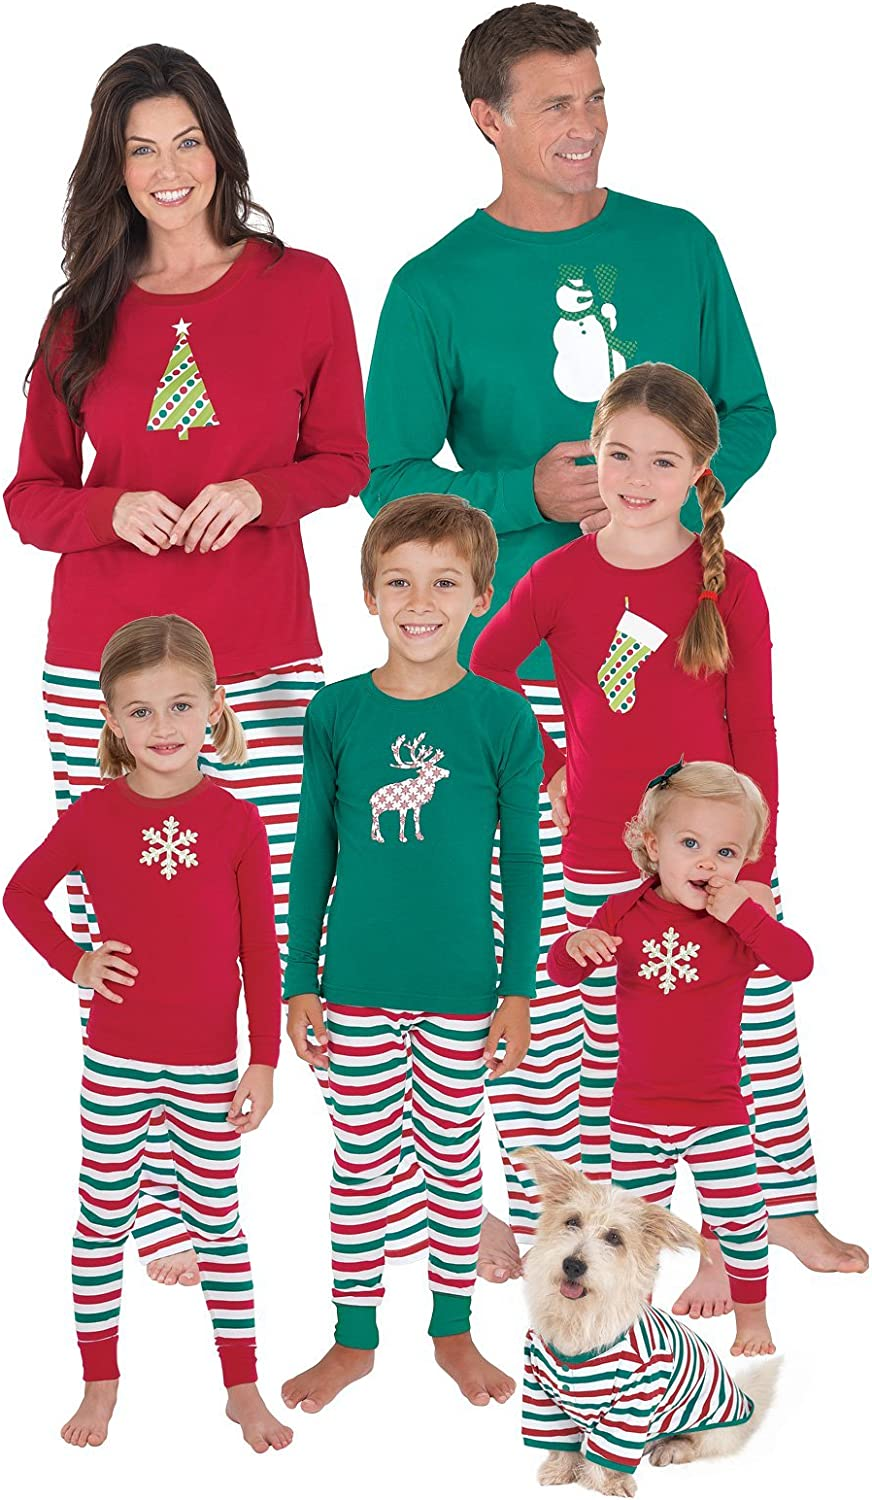 White Green Holiday Sets in Red Toddler and Kids Personalized Christmas Pajamas for Baby